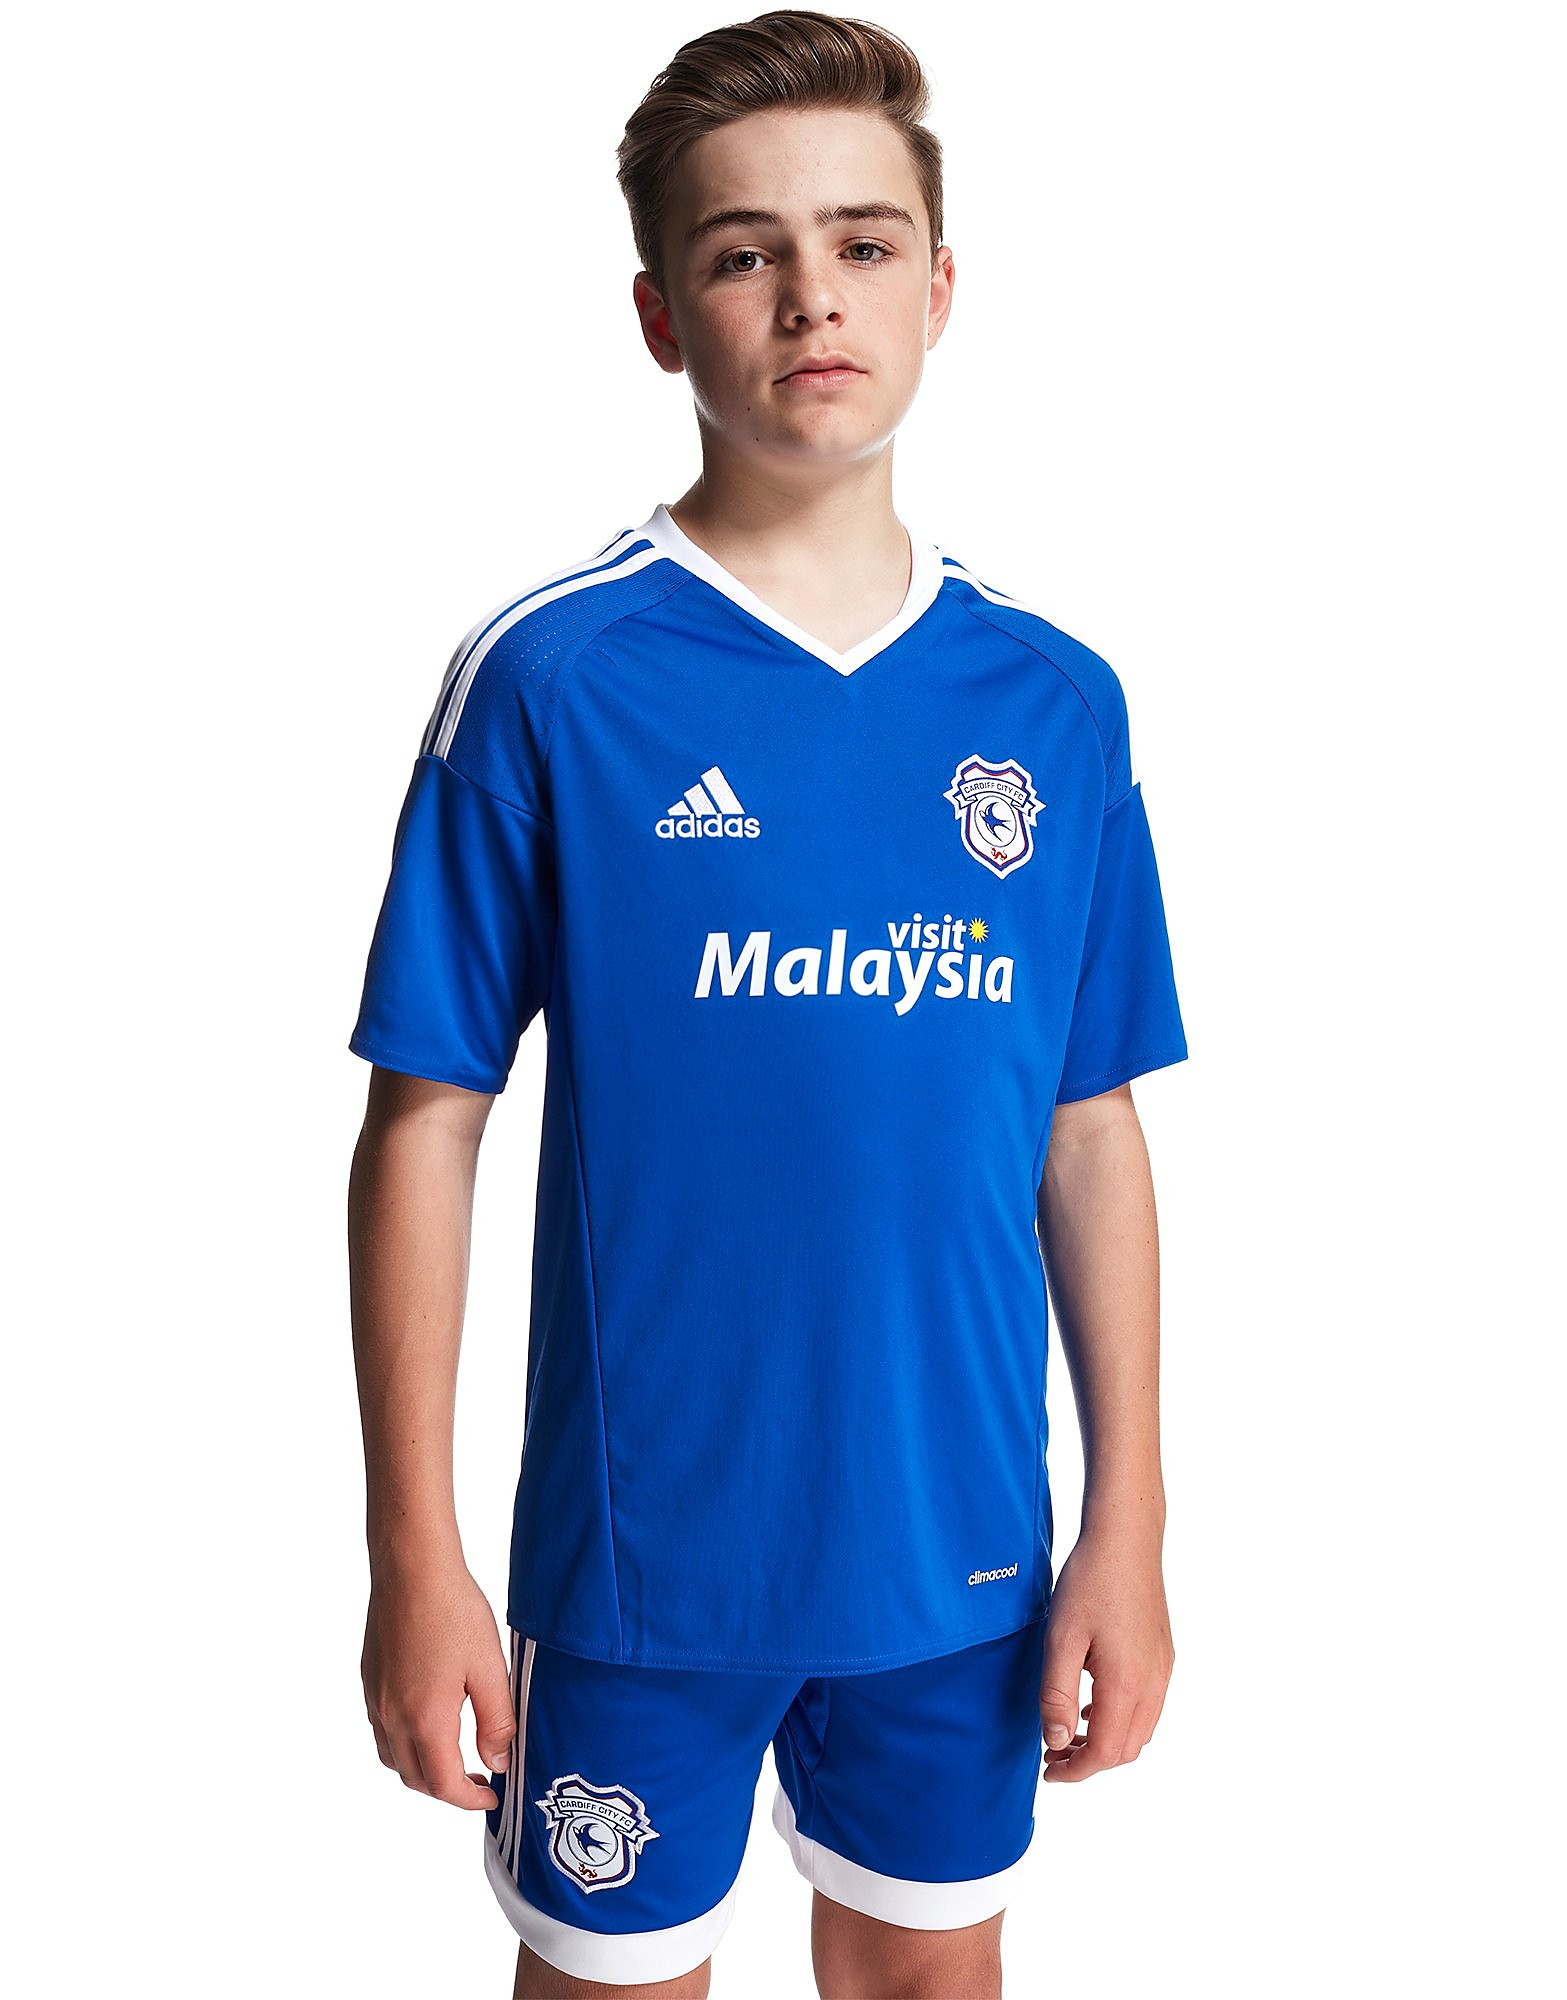 adidas Cardiff City FC 2016/17 Home Shirt Junior